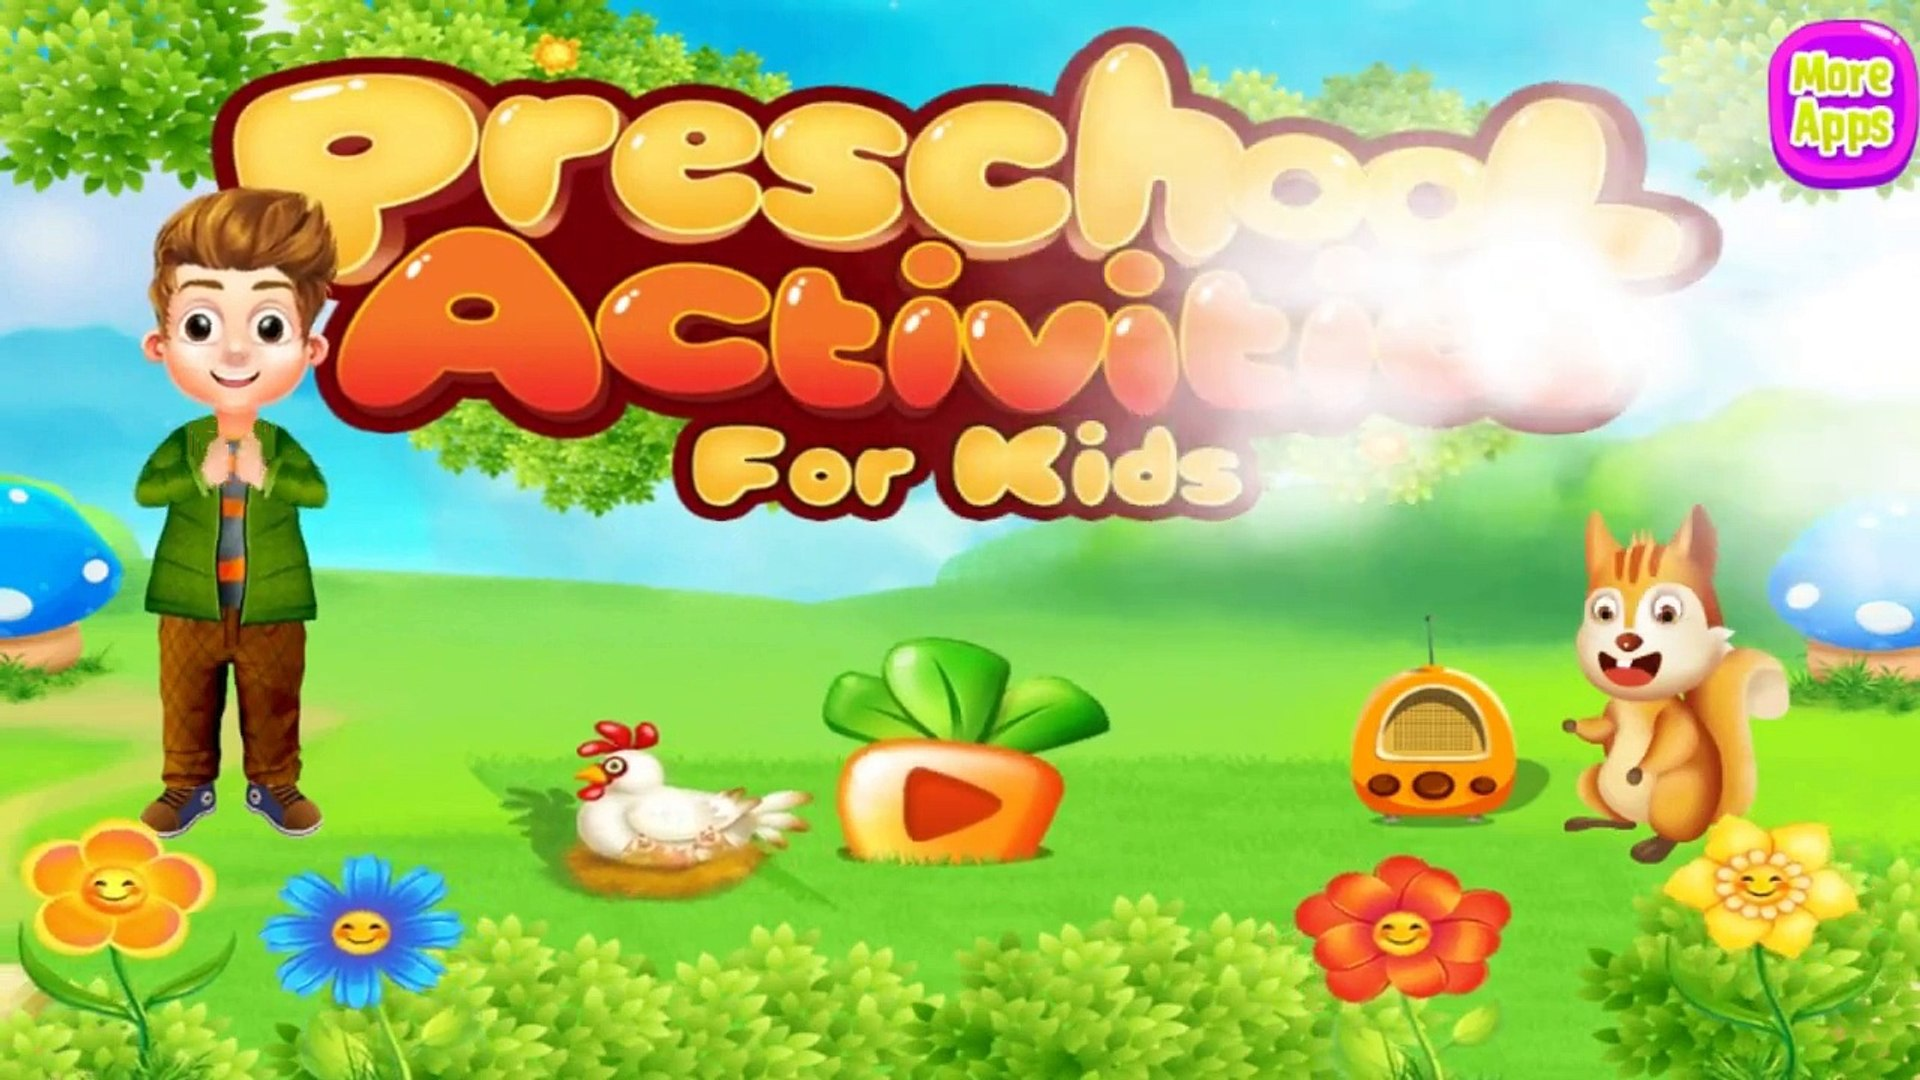 Preschool Activities For Kids - Learning Musical Instruments Sounds